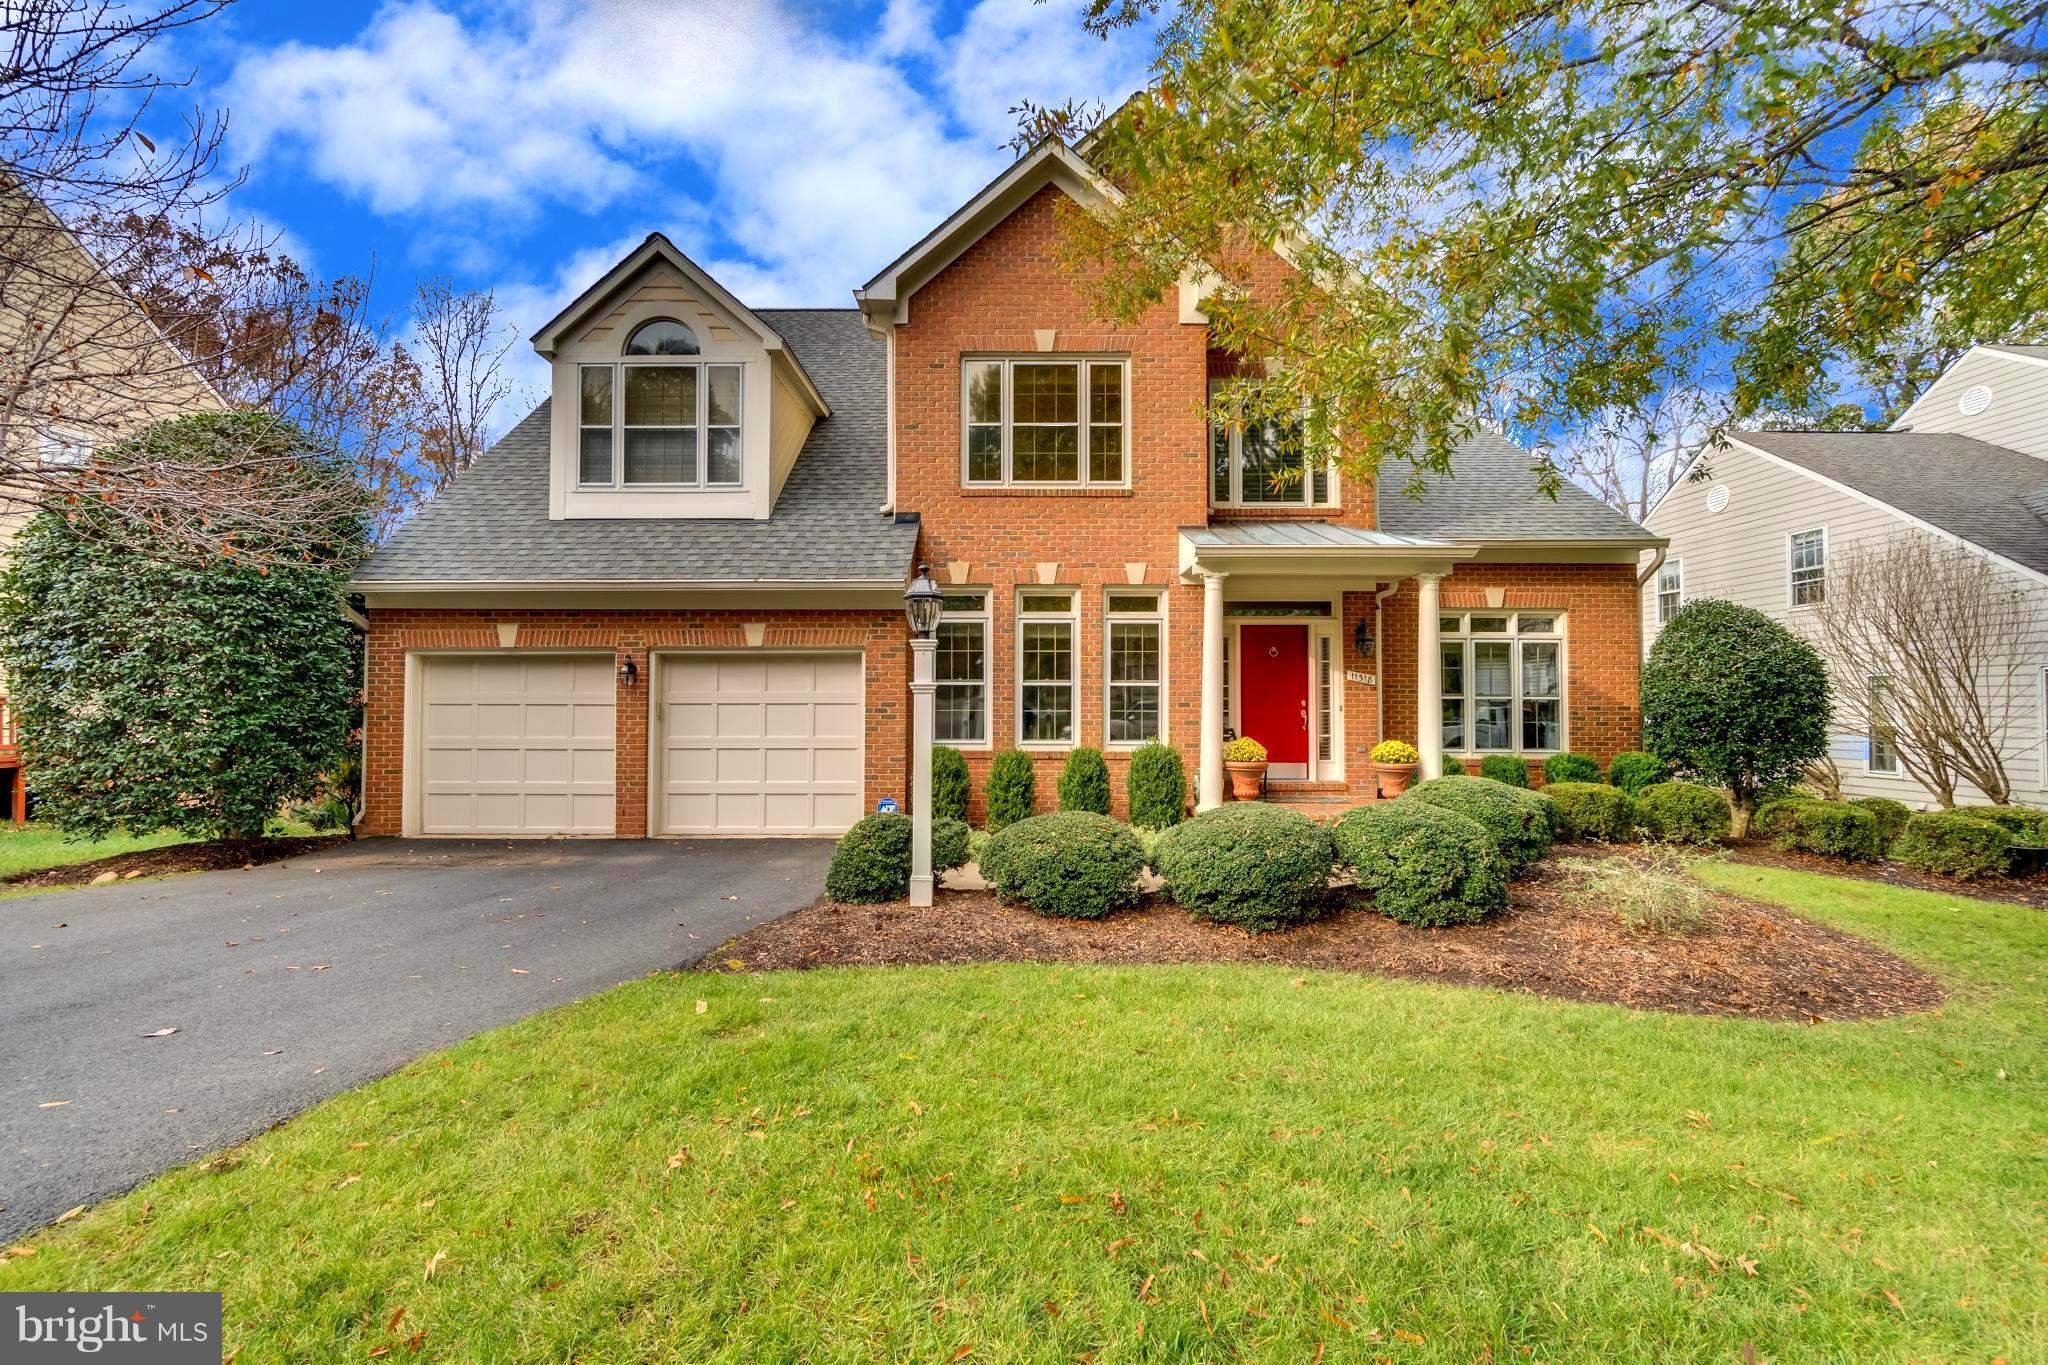 OPEN SUN,1-4pm-Beautiful North Reston Brick-Front,Center Hall Colonial Backing to Parkland.Recent Remodeling to Include Full Kitchen W Upgraded Chef Appliances and Dramatic Master Bath W/ Heated Porcelain Floors.  2-Story Foyer-Main Level  Library w/ French Doors , Extensive Trim Work to Include ,Crown, Chair Rail and Shadow Boxing  Throughout .Sunken Living Room W/Bay Windows Supplying Plenty of Natural Light . Home Overlooks Woods and Walking Trail . New Roof 2015, New HVAC 2012,New Garage Doors and Openers 2014.